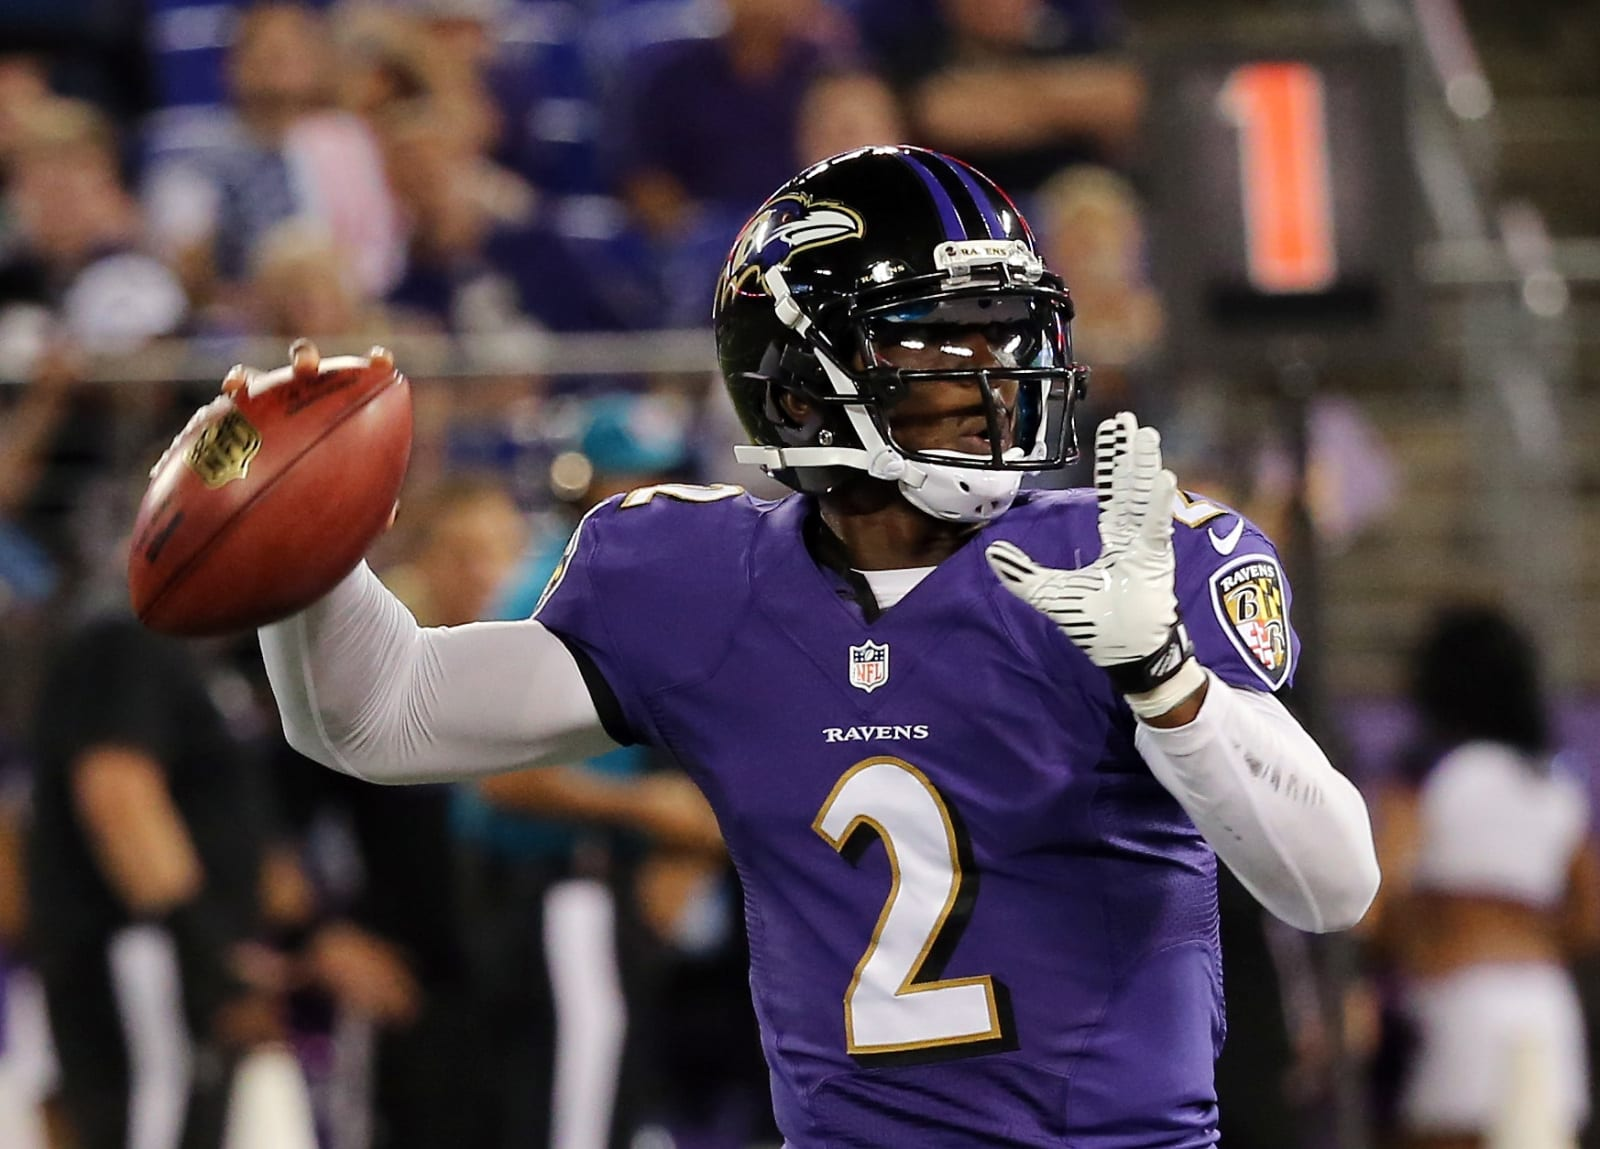 Back-up quarterback options for Ravens with Joe Flacco trade - Page 4